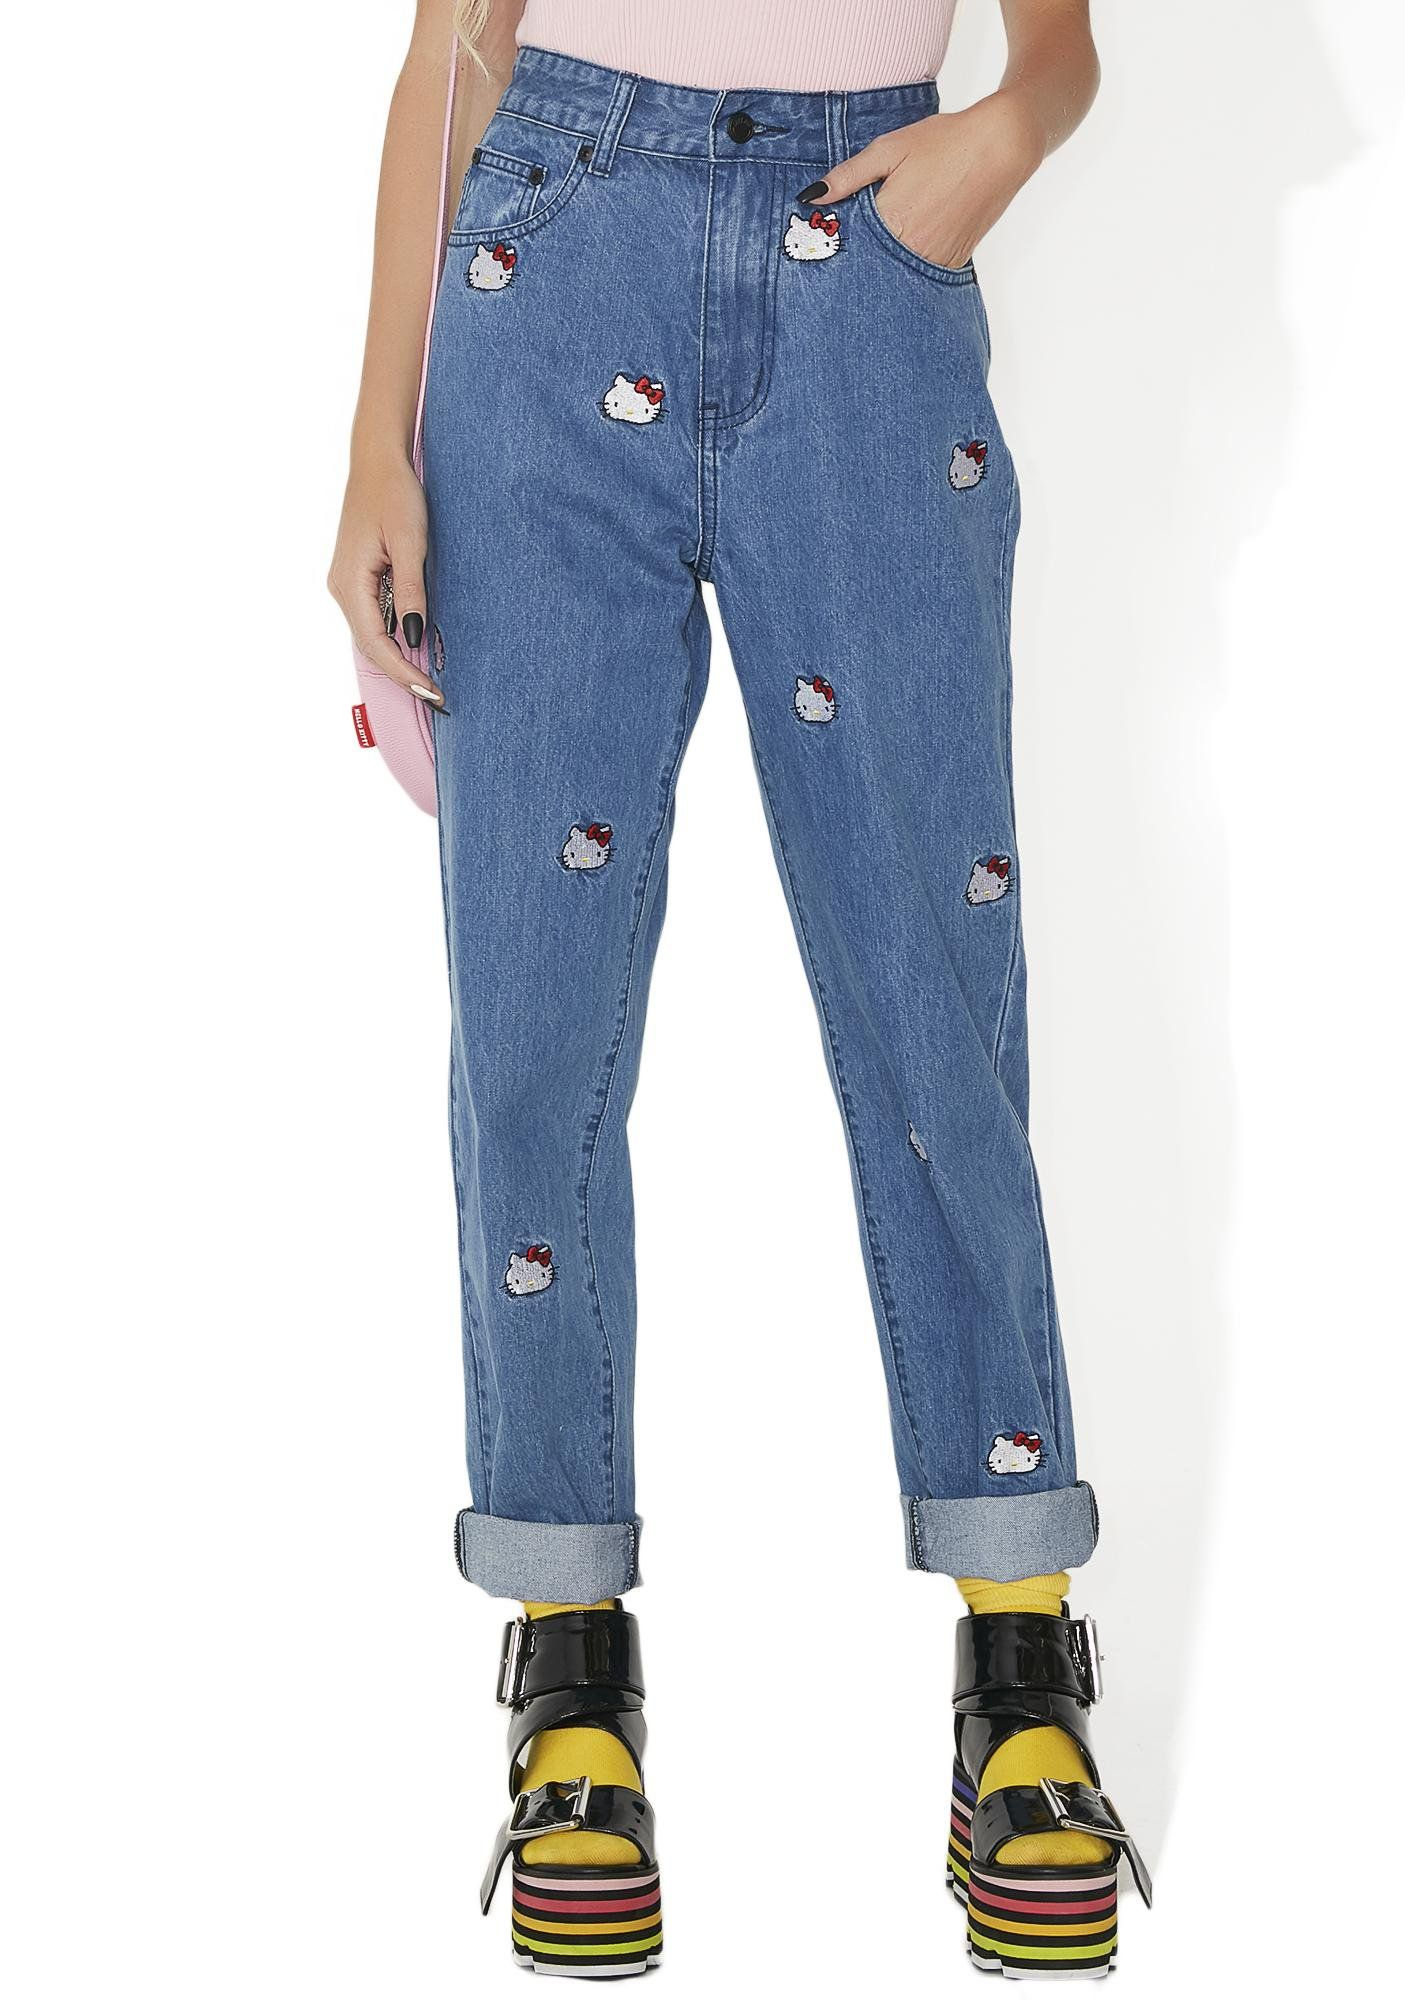 Lazy Oaf Hello Kitty Emb Jeans will show 'em who your favorite kitty is! These jeans feature a medium blue denim construction, a high waisted fit, classikk five pocket design, and lil embroidered Hello Kitty faces all ova.